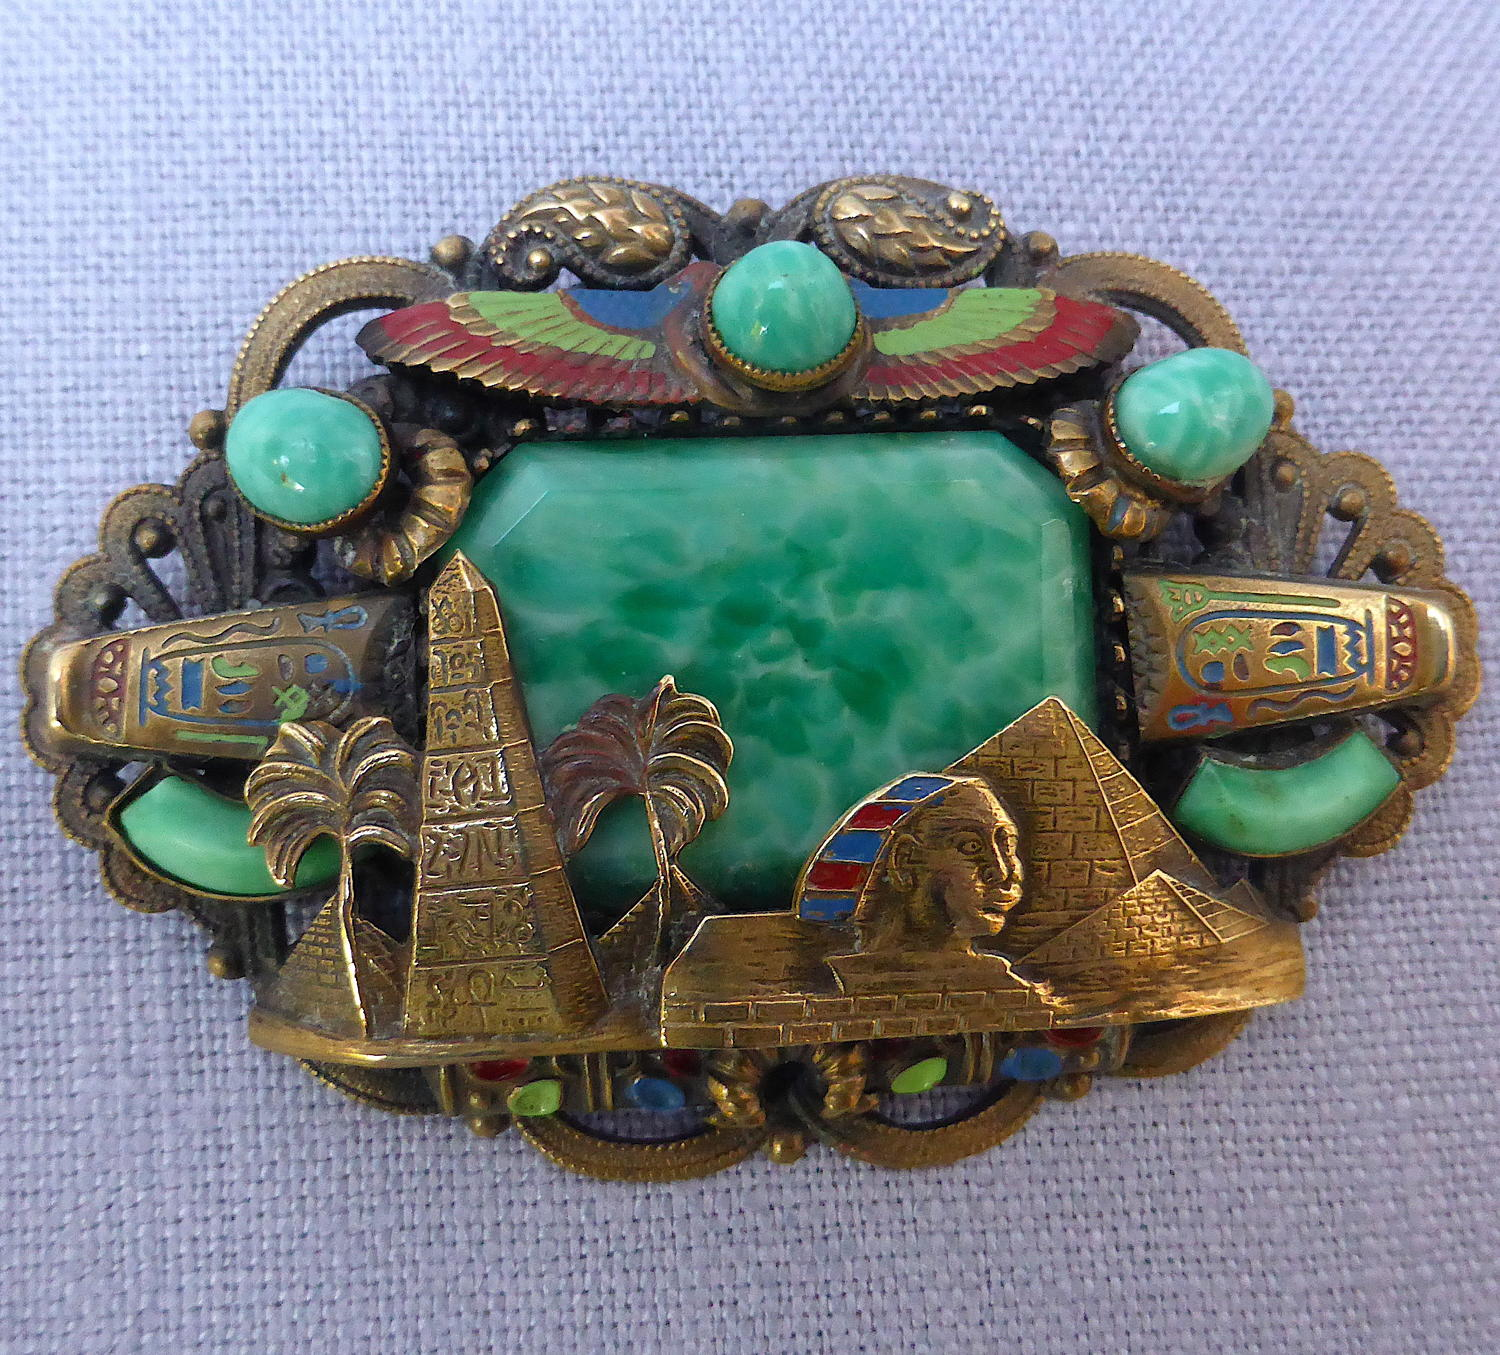 1920s Max Neiger Egyptian Revival brooch